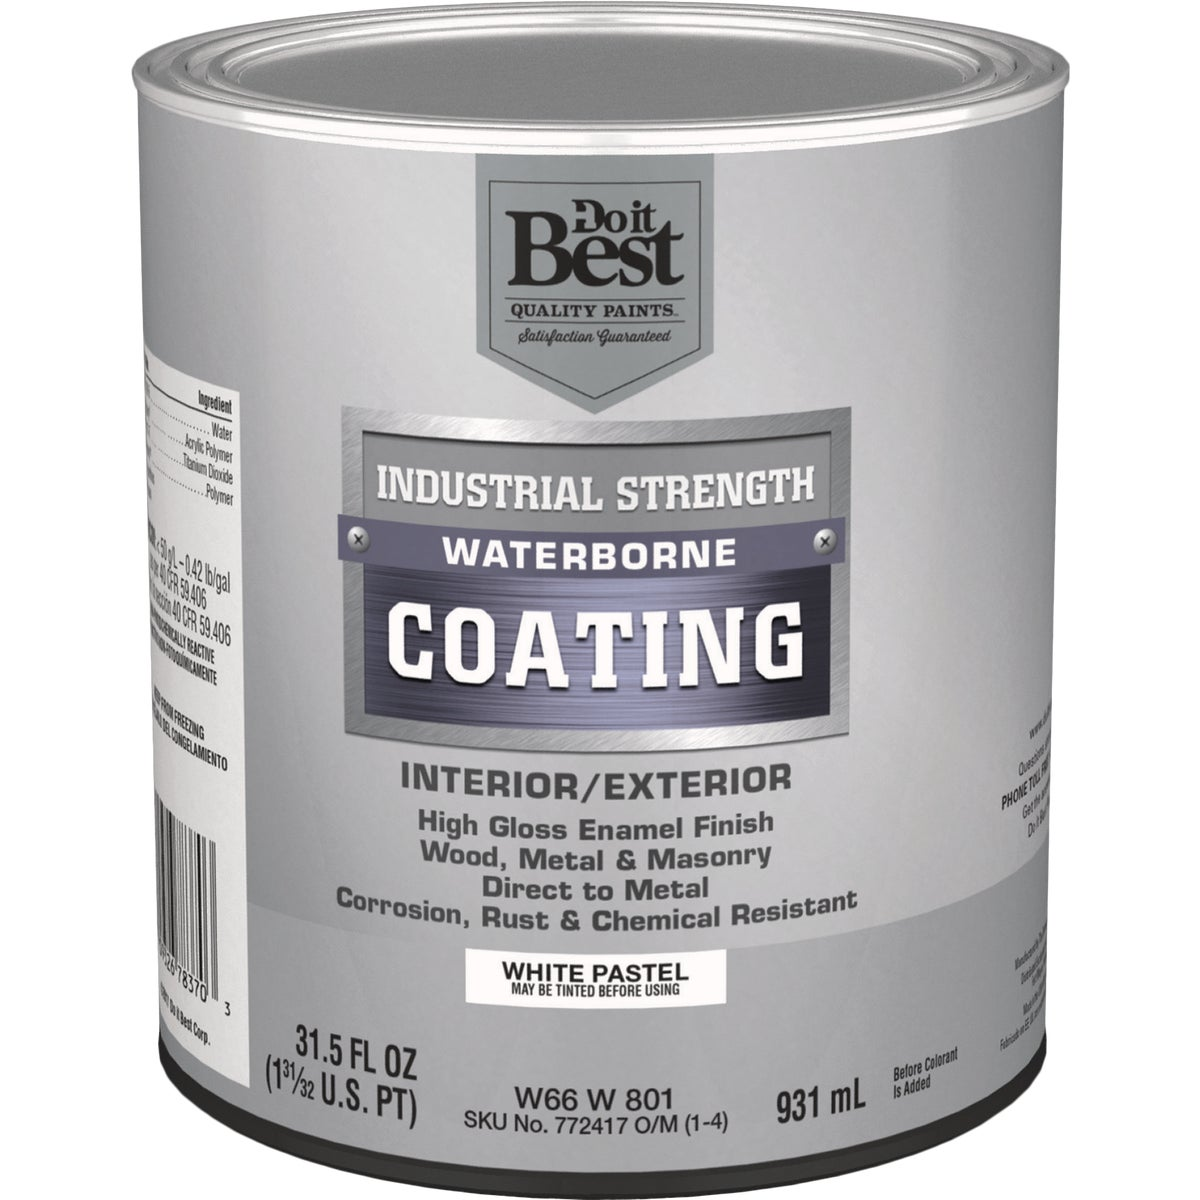 GLS PSTL/WHT LATEX PAINT - W66W00801-44 by Do it Best